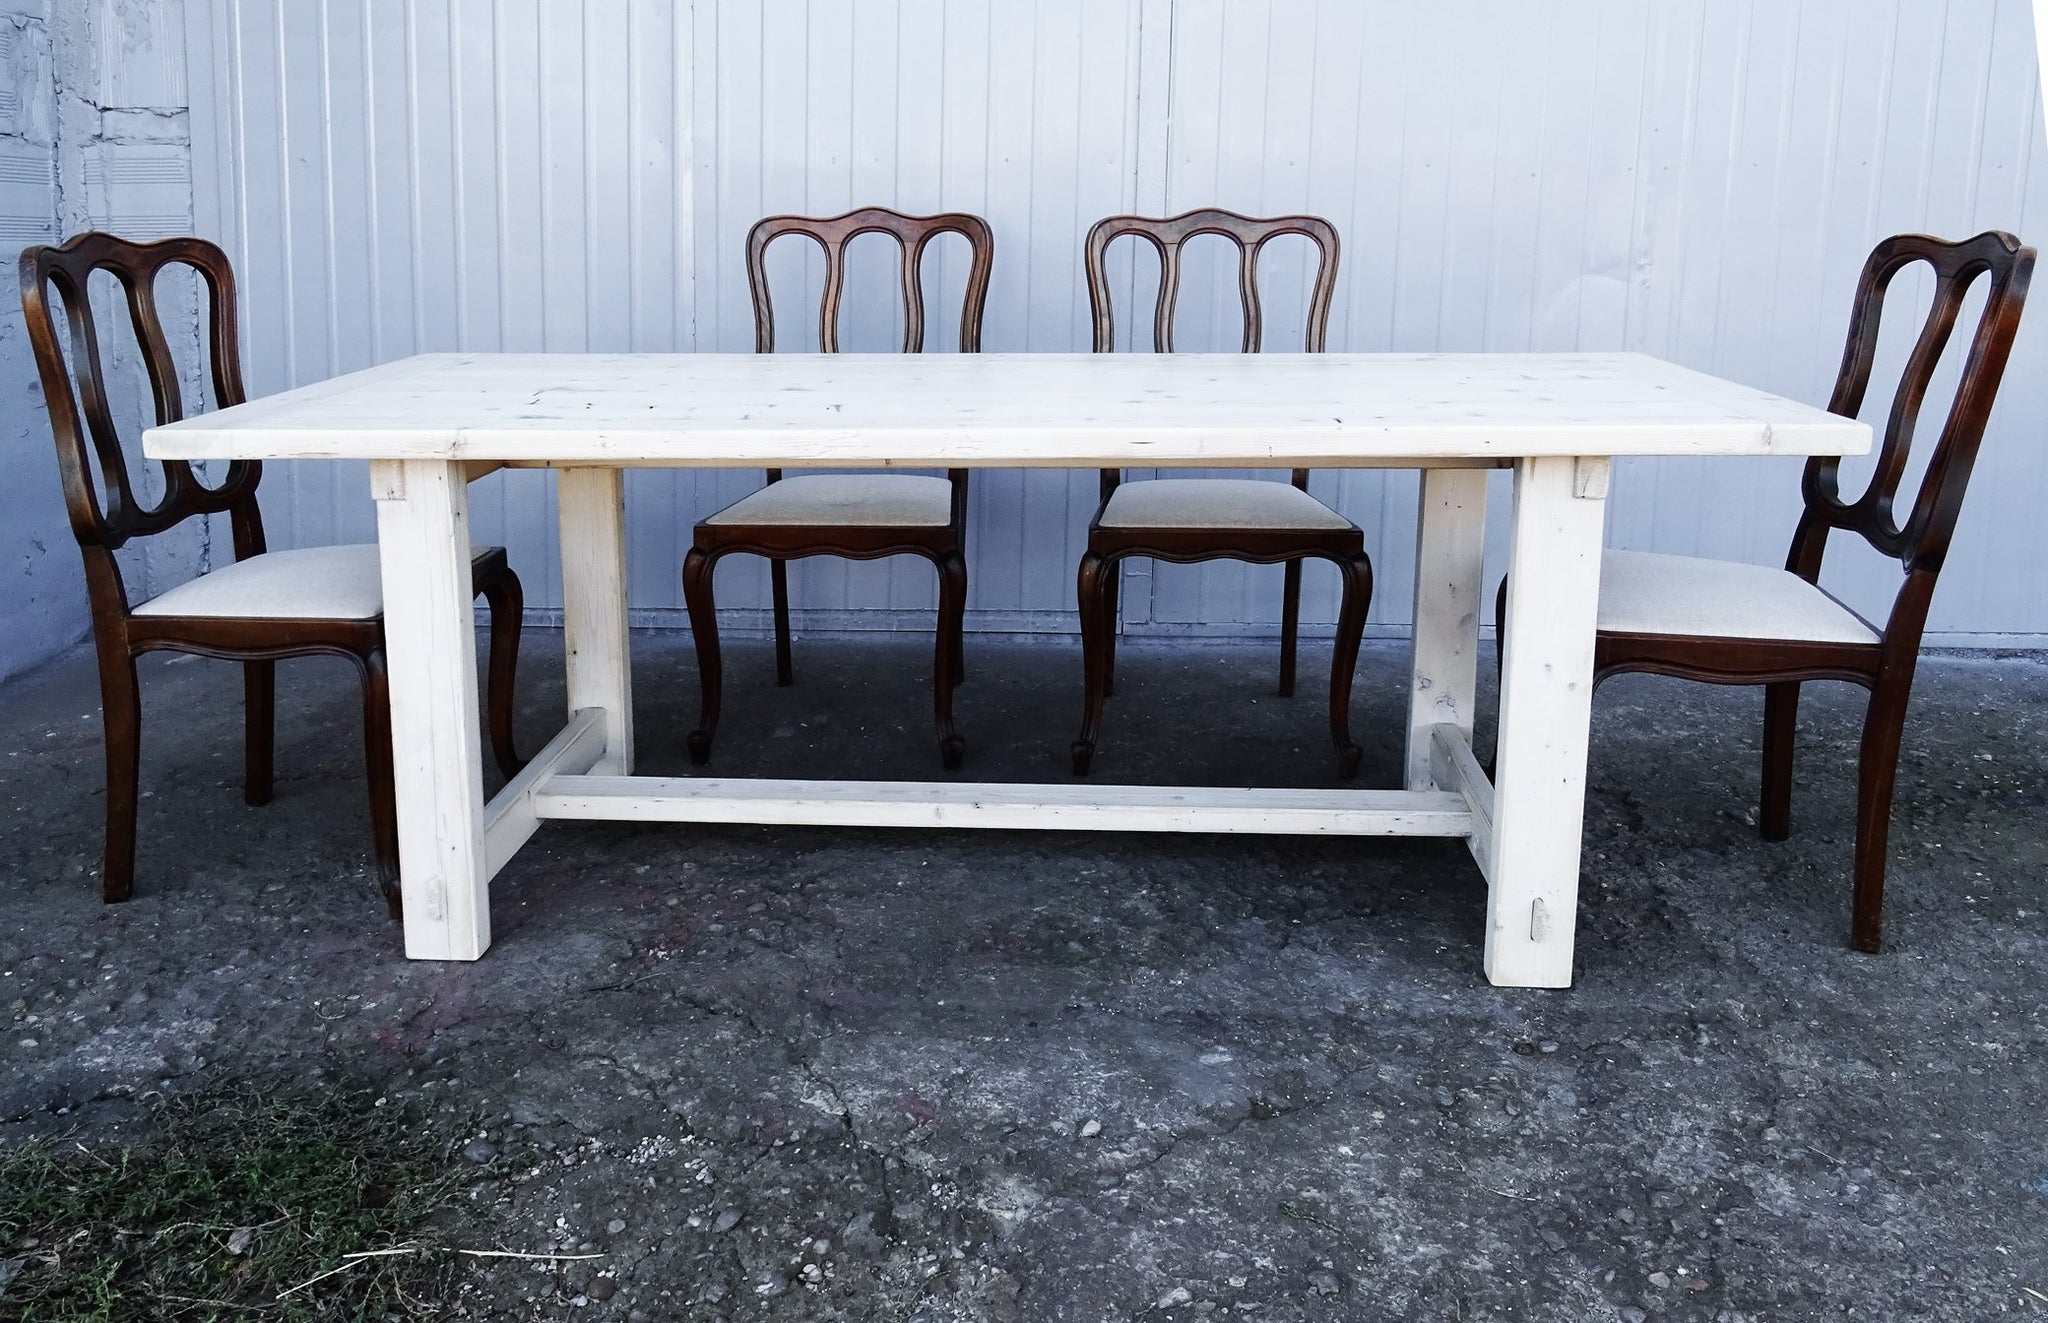 ... Whitewashed Reclaimed Pine Wood Furniture Set Dining Table Coffee Table Console Table ... & Whitewashed Reclaimed Pine Wood Furniture Set